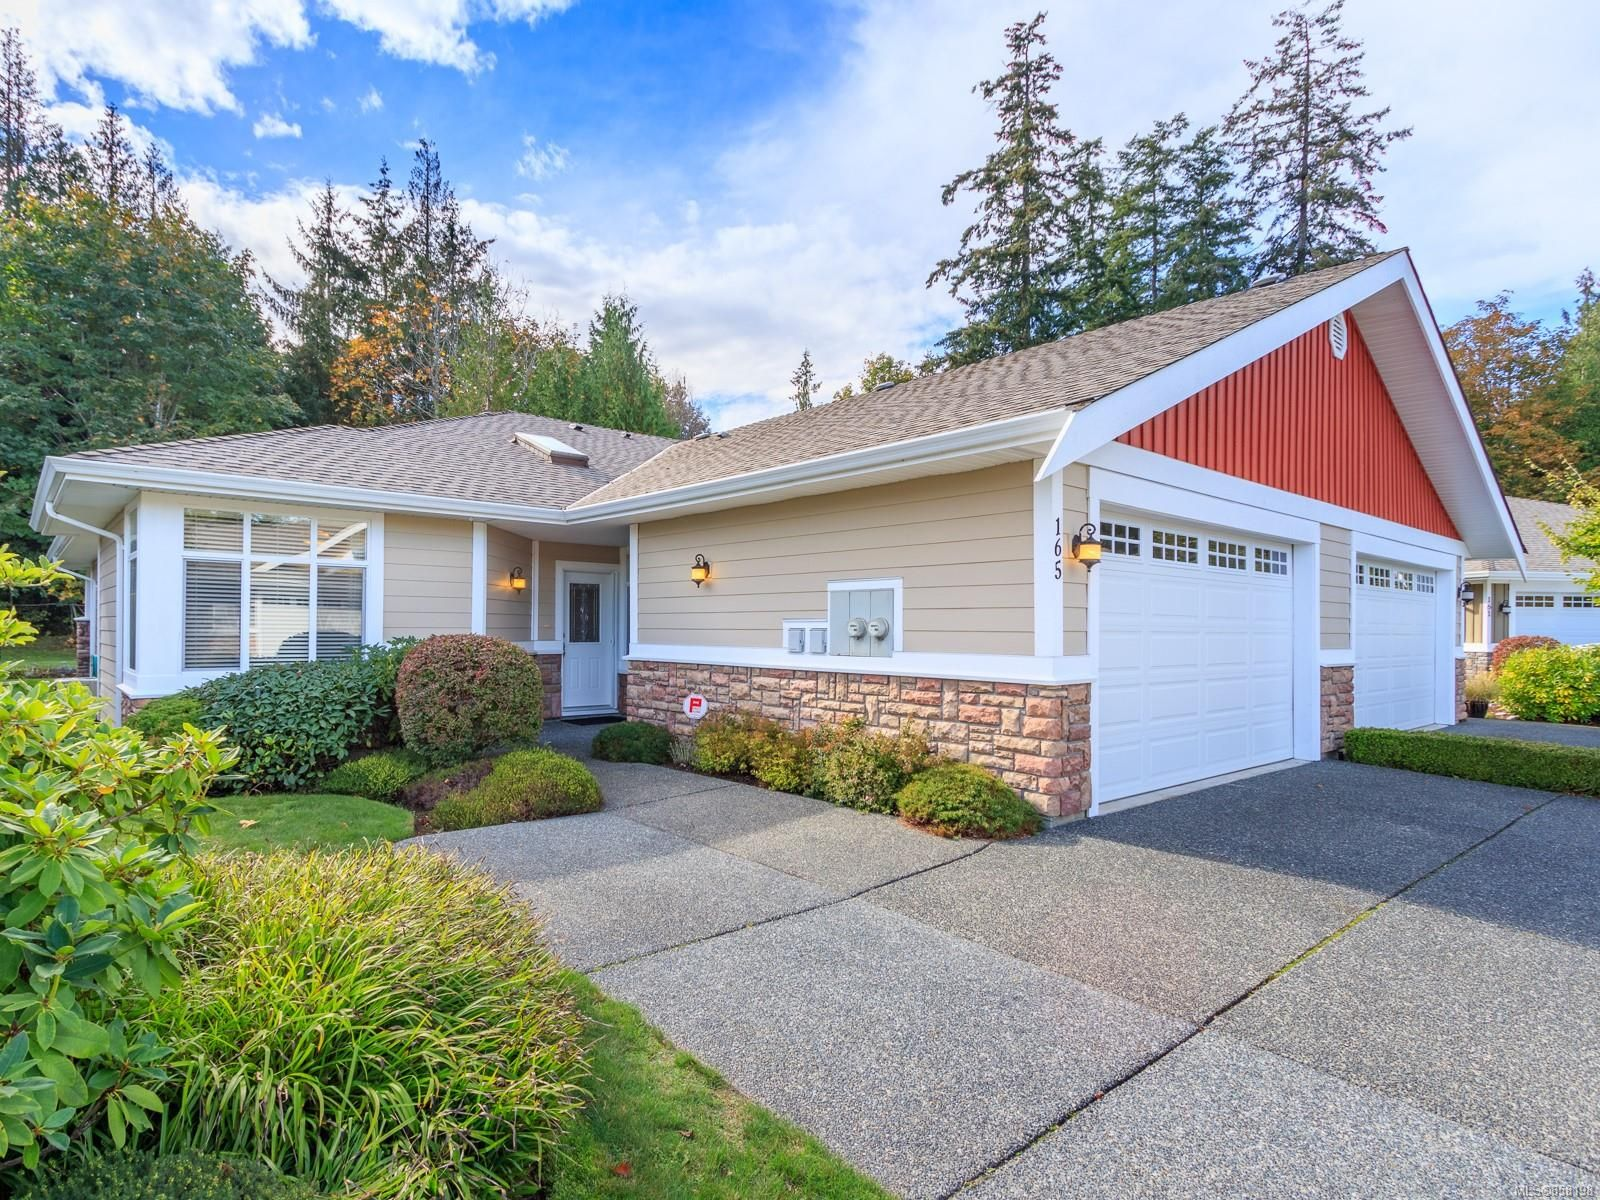 Main Photo: 165 730 Barclay Cres in : PQ Parksville Row/Townhouse for sale (Parksville/Qualicum)  : MLS®# 858198